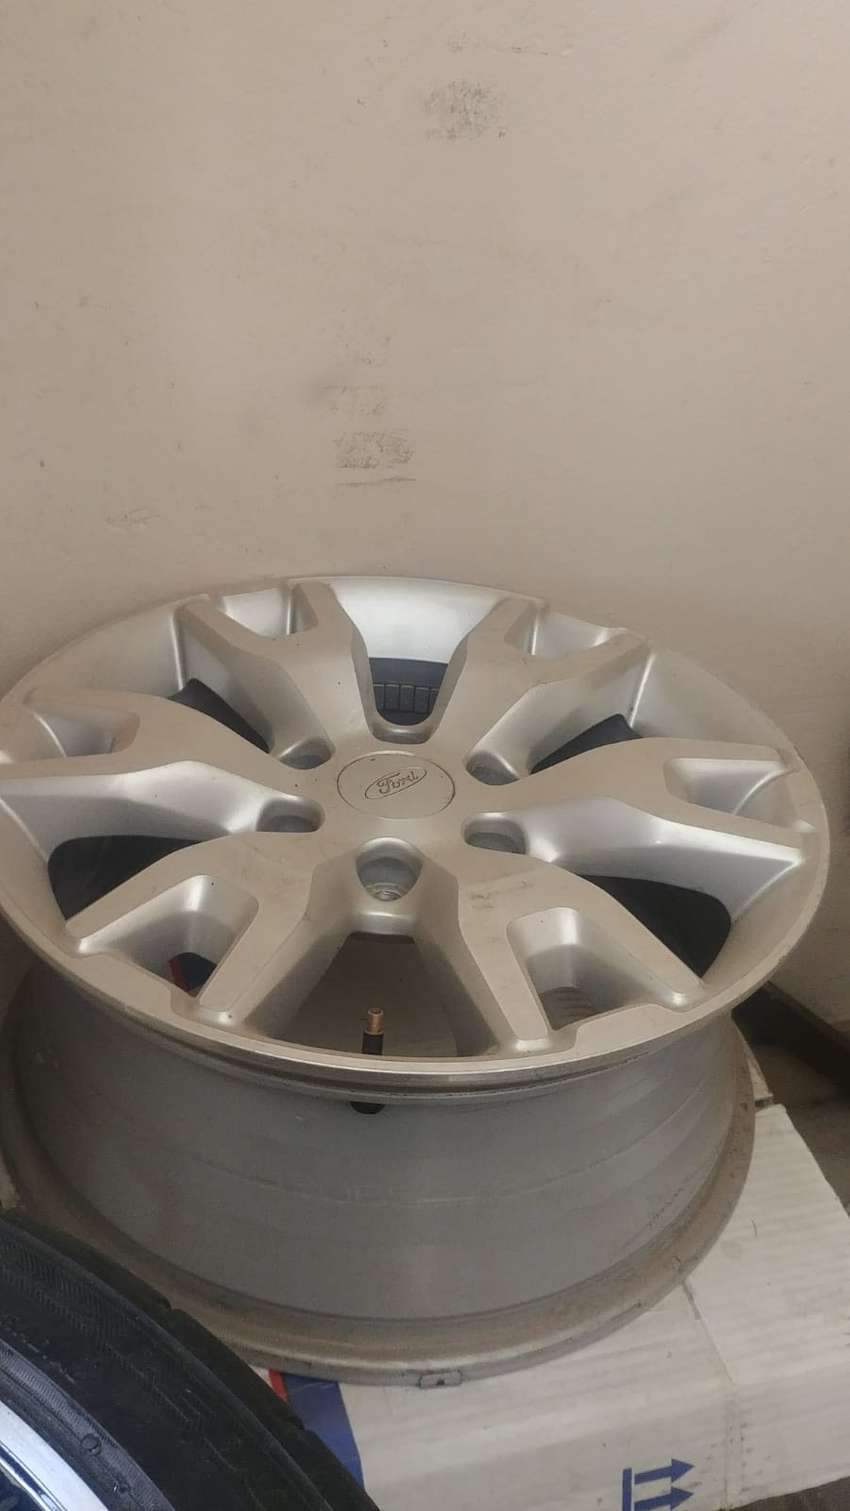 3 Ford Ranger Wildtrack rims for sale.